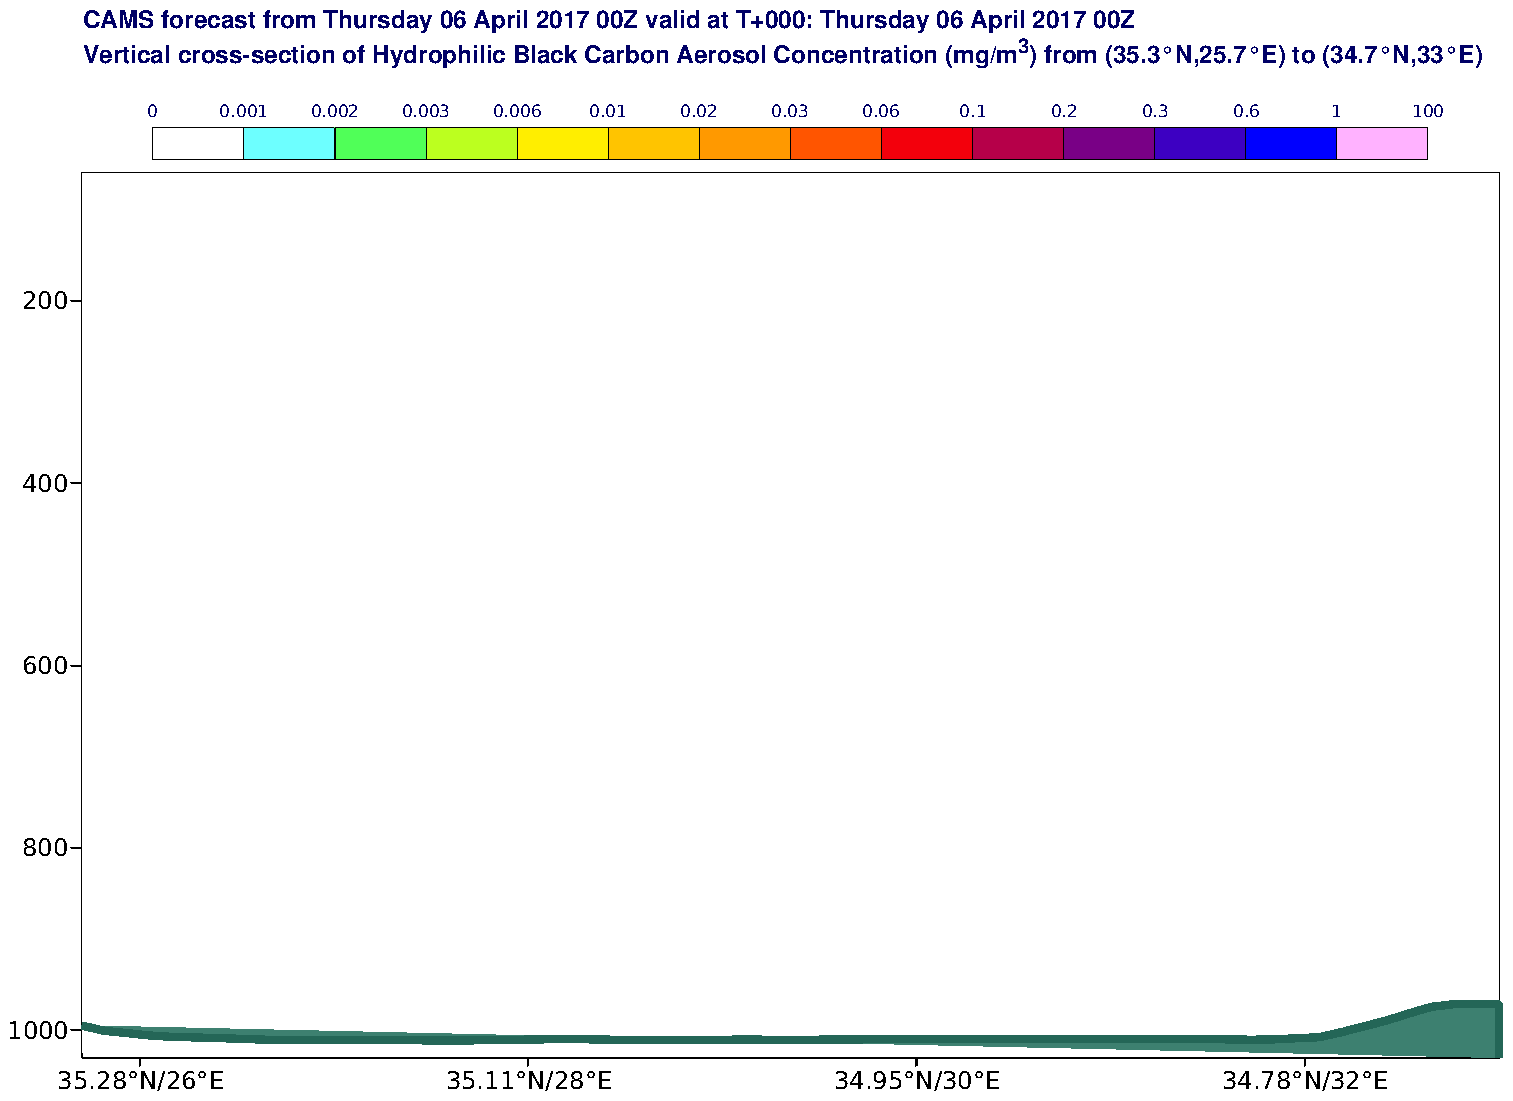 Vertical cross-section of Hydrophilic Black Carbon Aerosol Concentration (mg/m3) valid at T0 - 2017-04-06 00:00